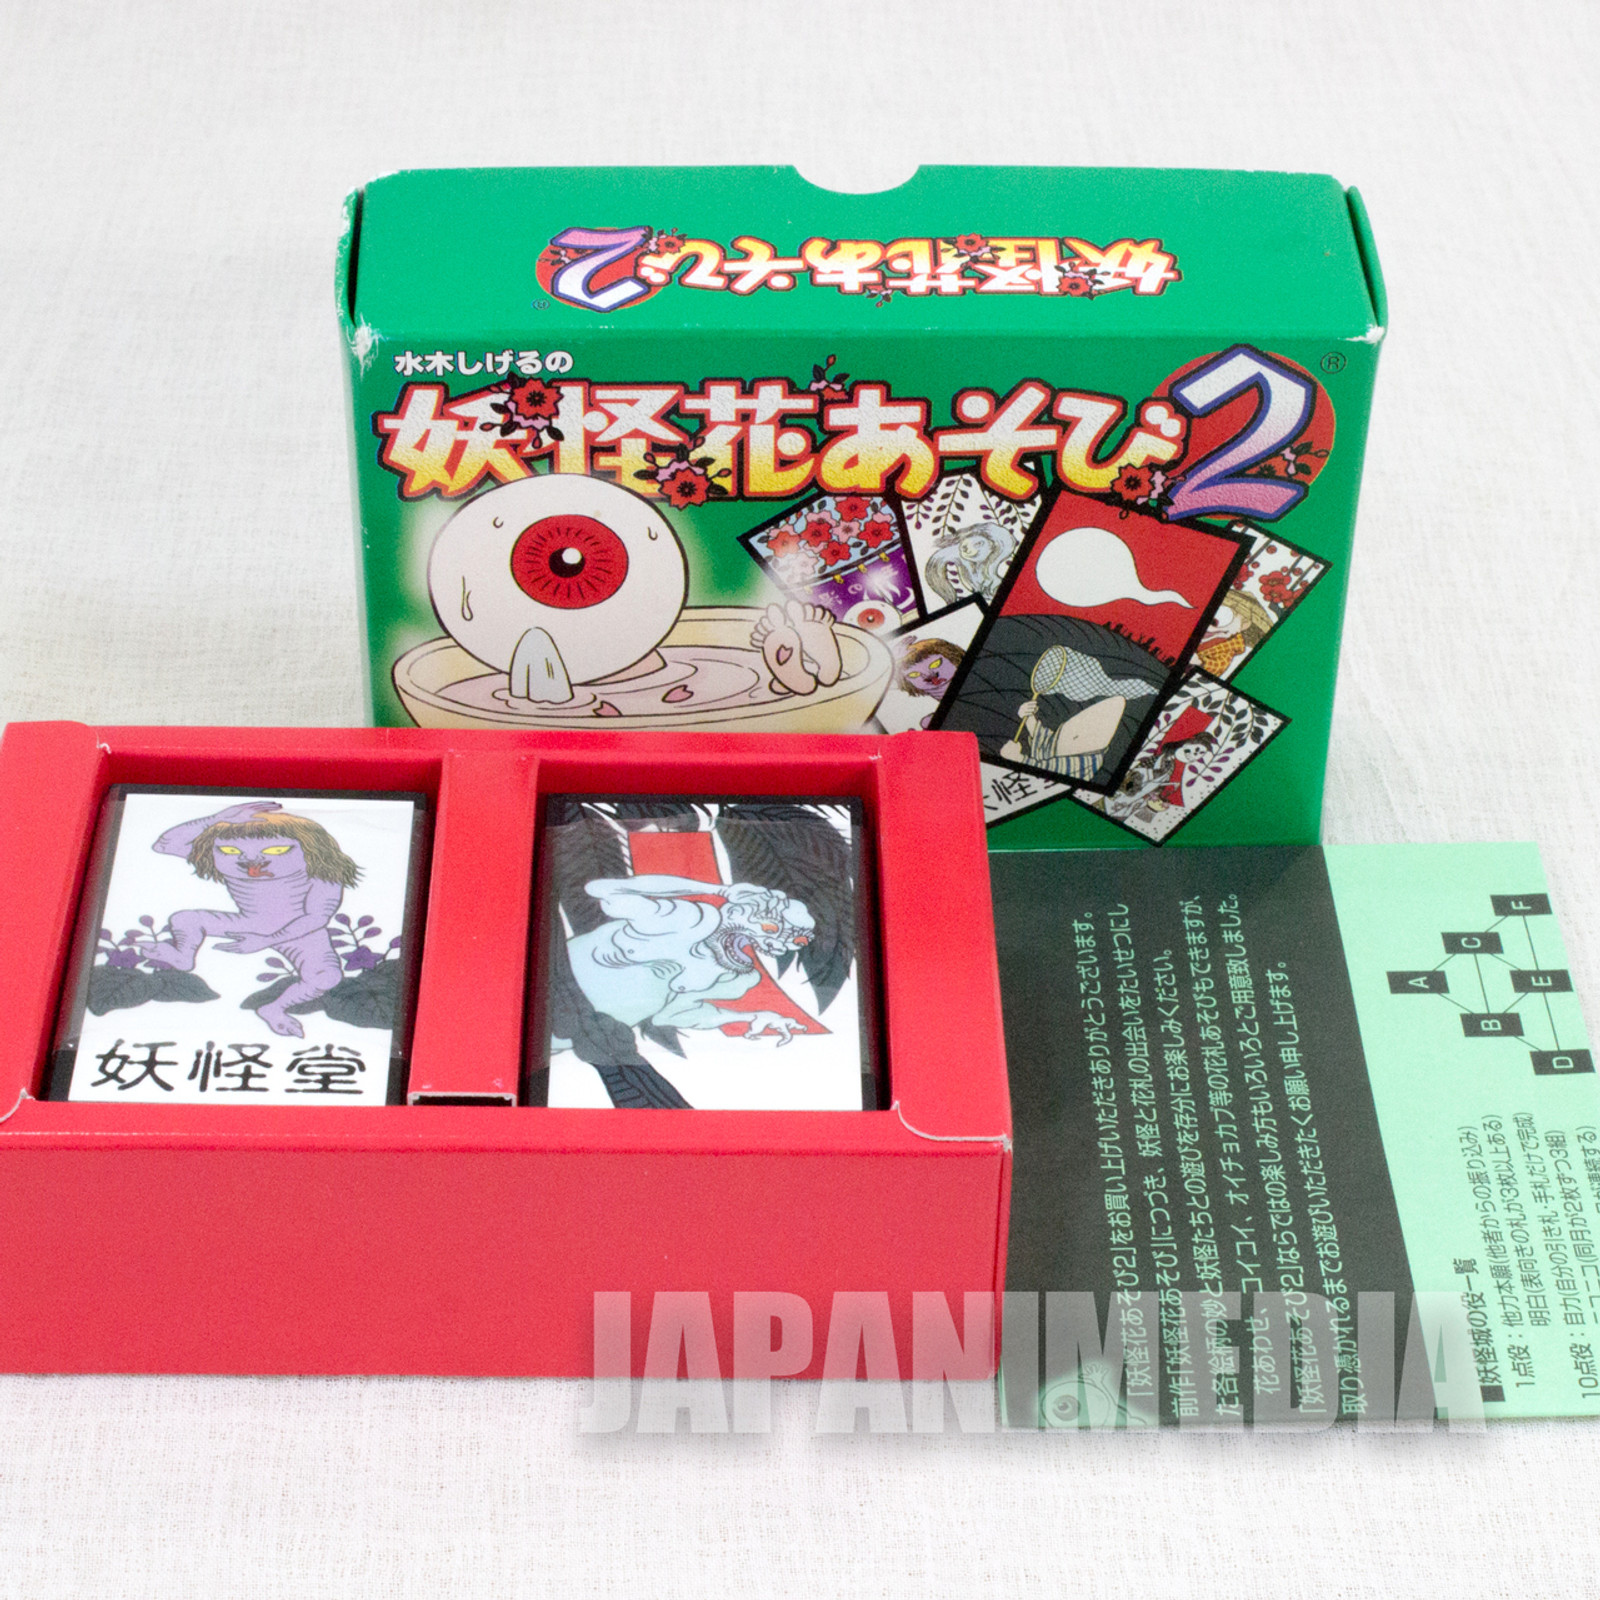 GeGeGe no Kitaro Hanafuda 2 Japanese Card Game 48pc JAPAN ANIME MANGA